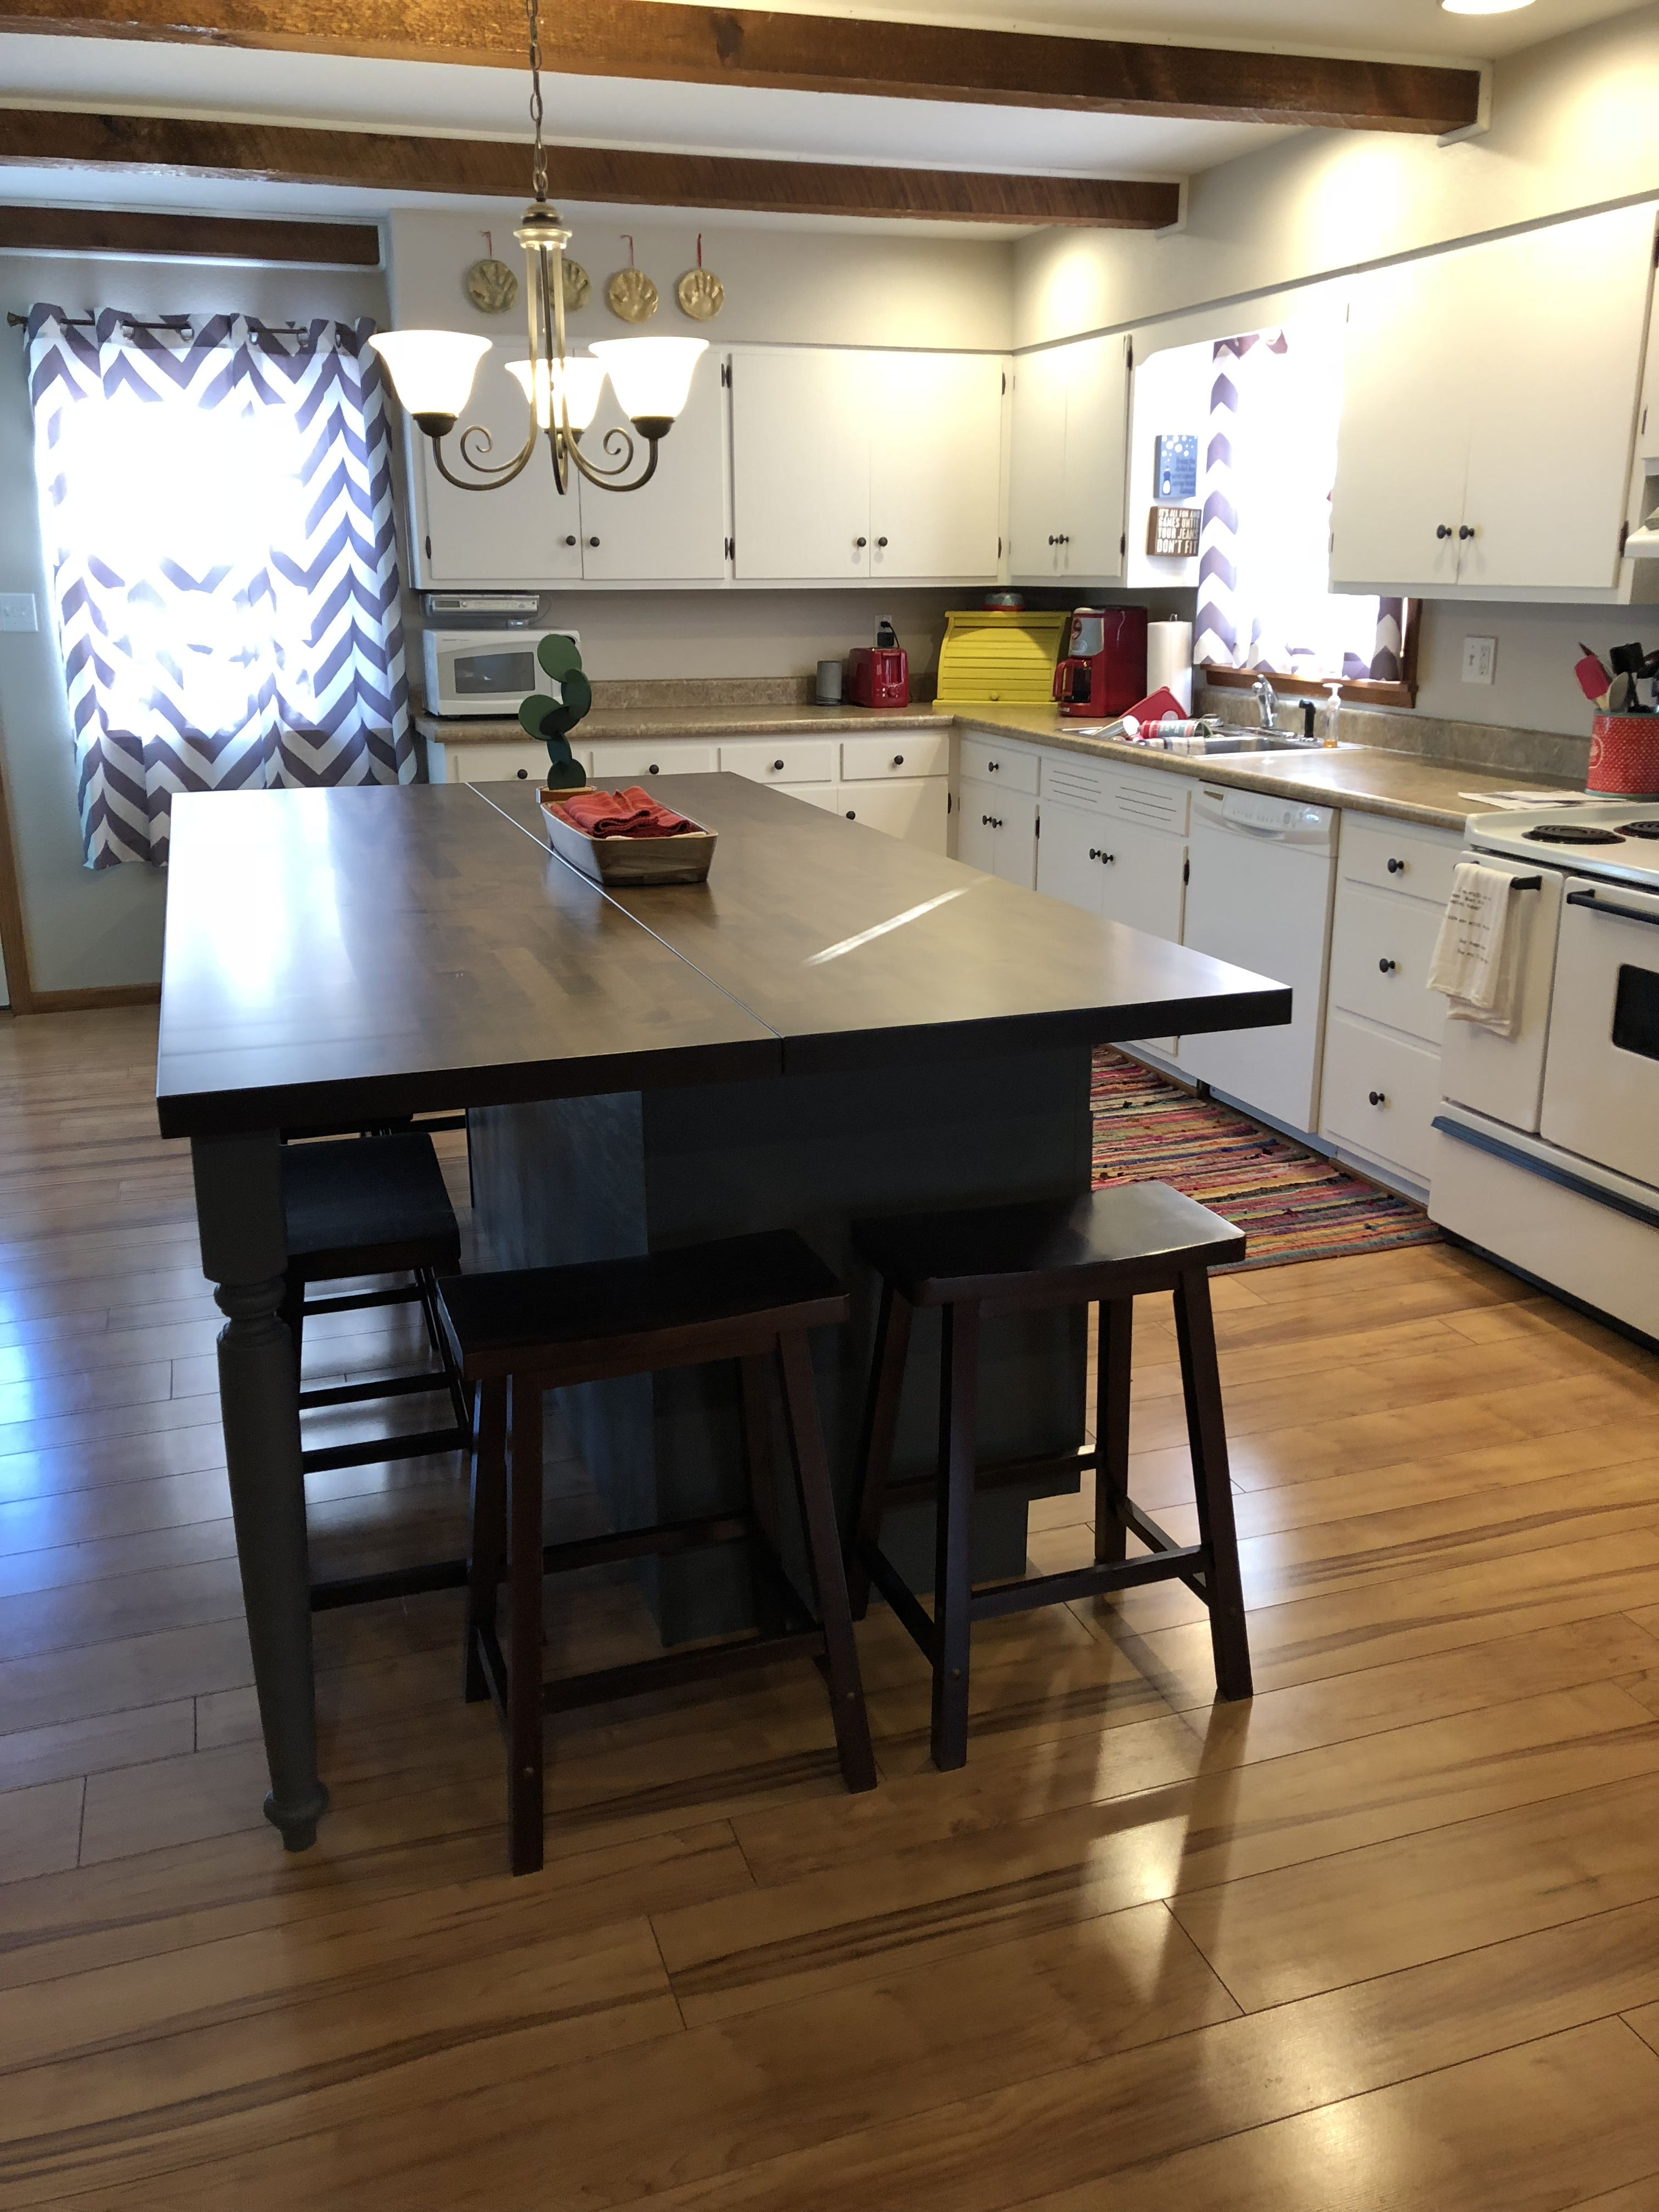 Diy kitchen island made with stock base and